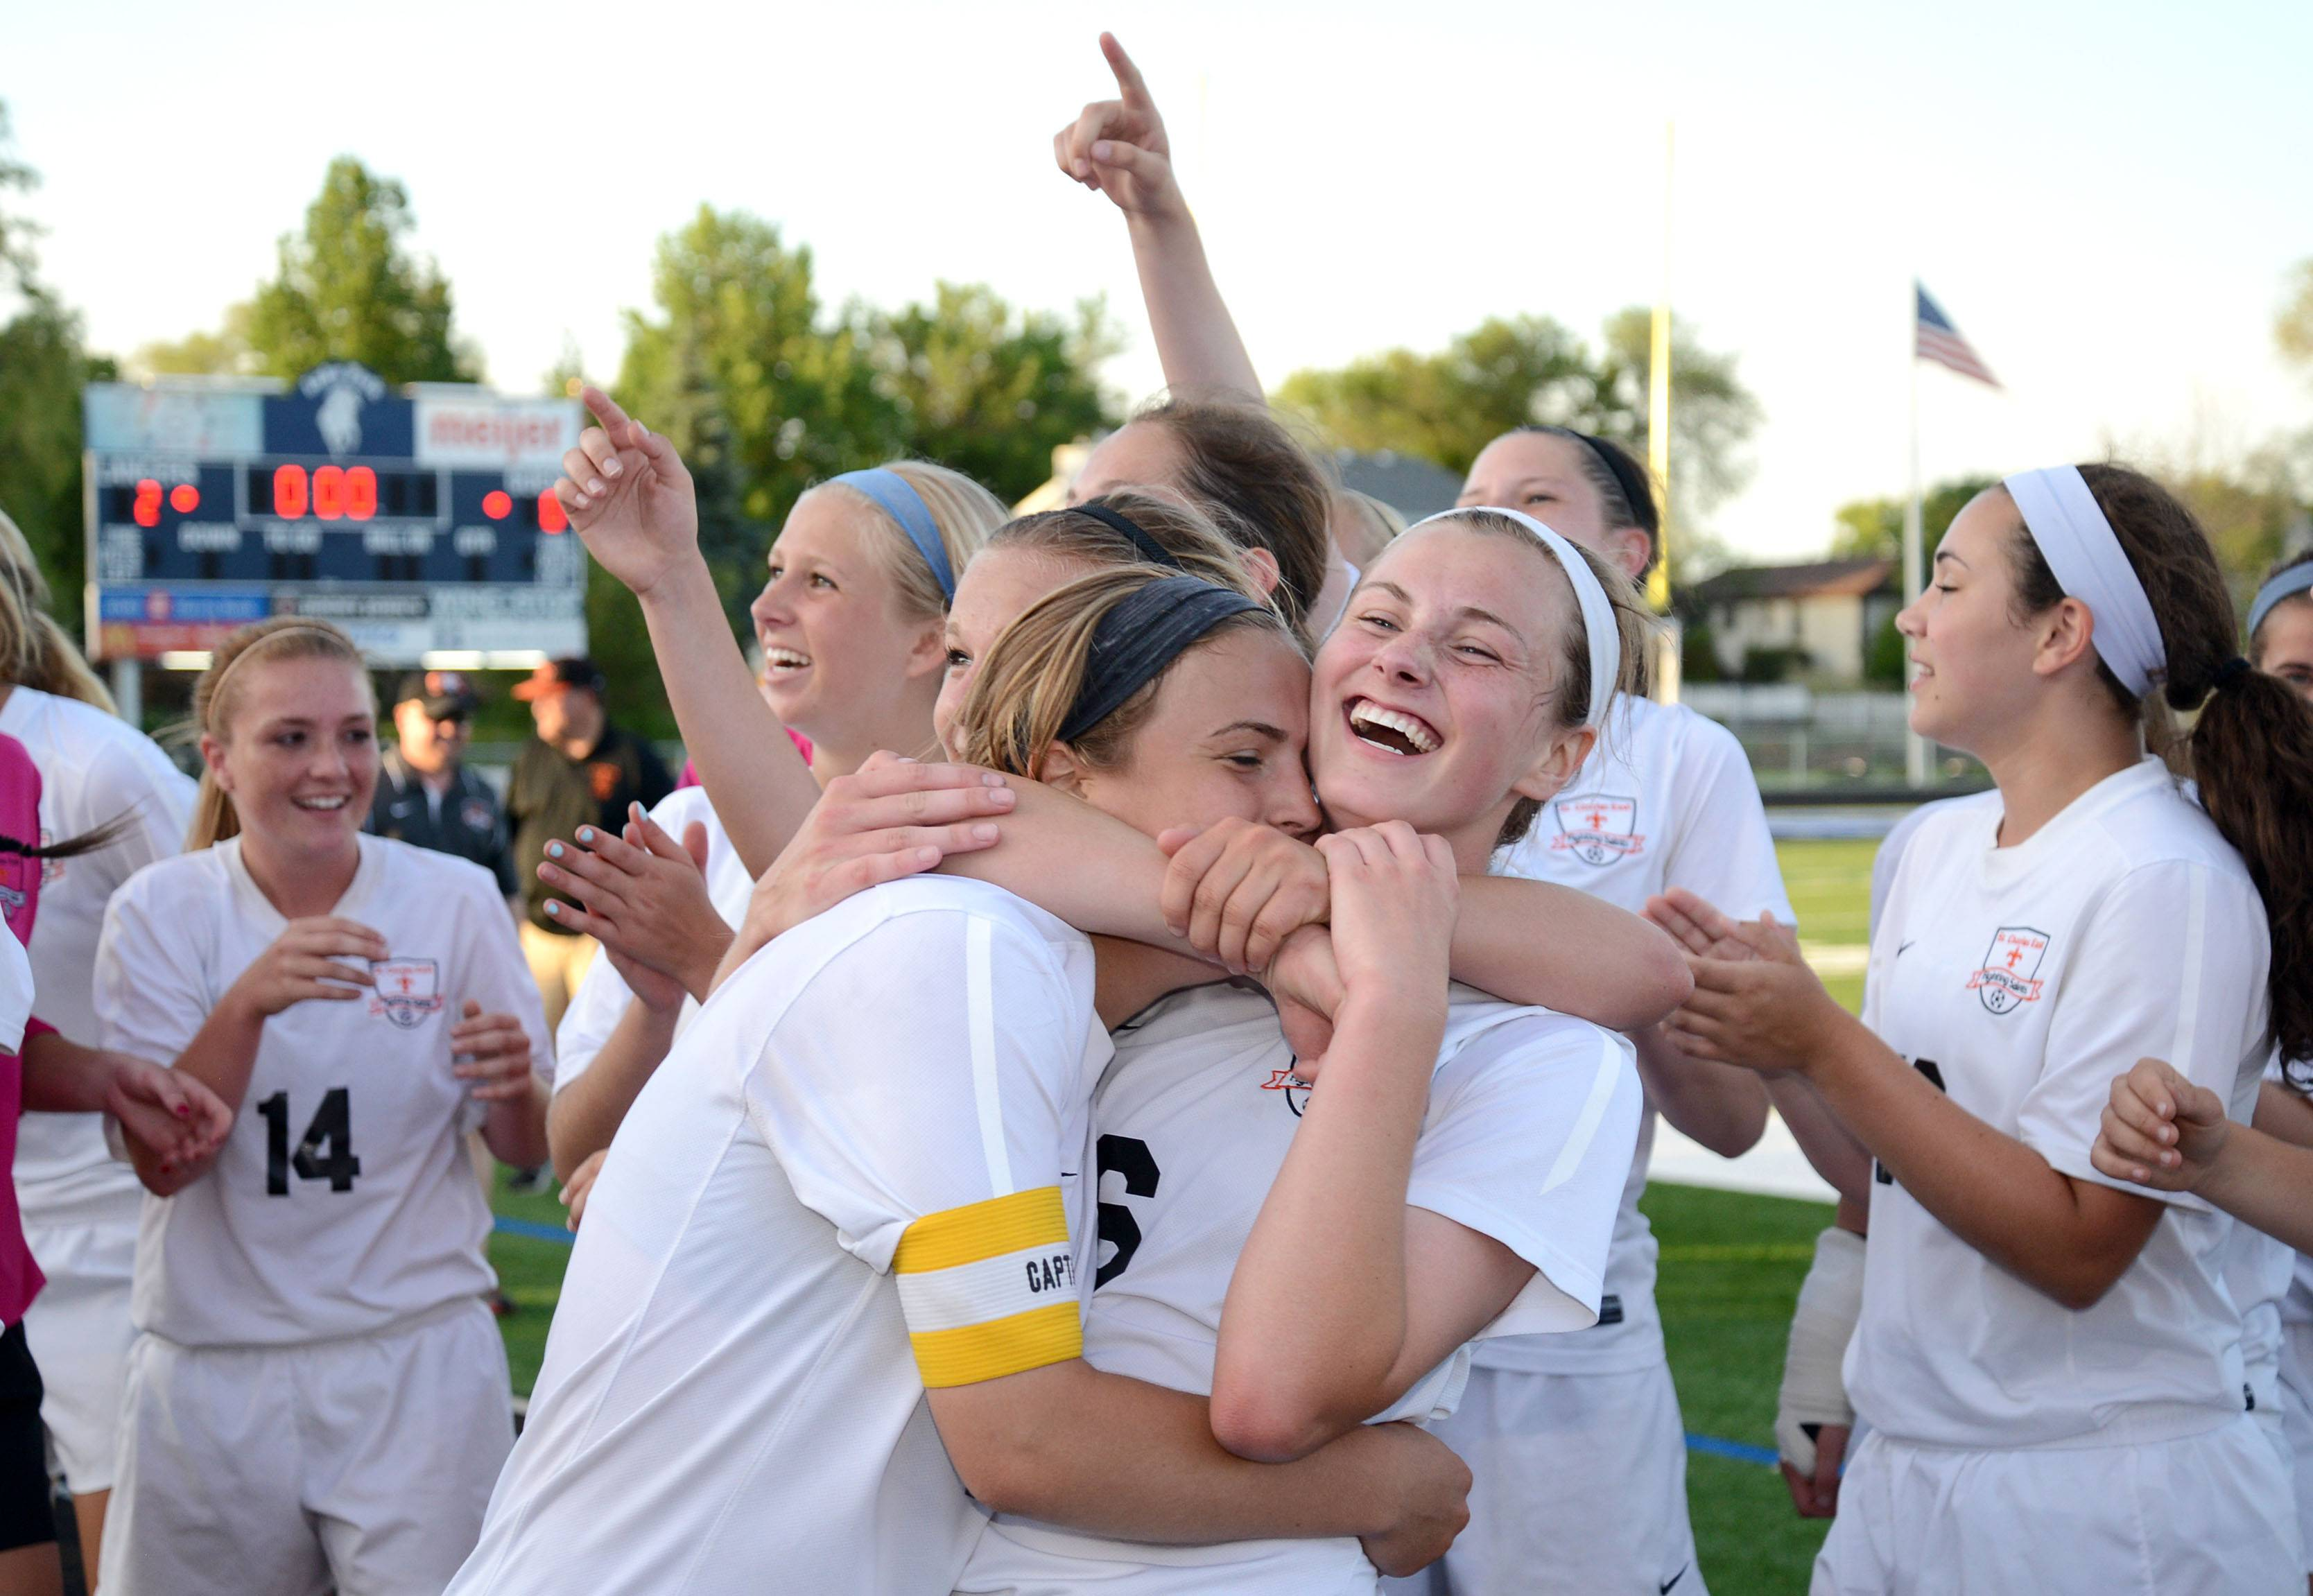 St. Charles East's Anna Corirosi, left, and Kelli Santo Paolo celebrate their win over Huntley in the Class 3A girls soccer supersectional at Lake Park High School in Roselle on Tuesday, June 3.